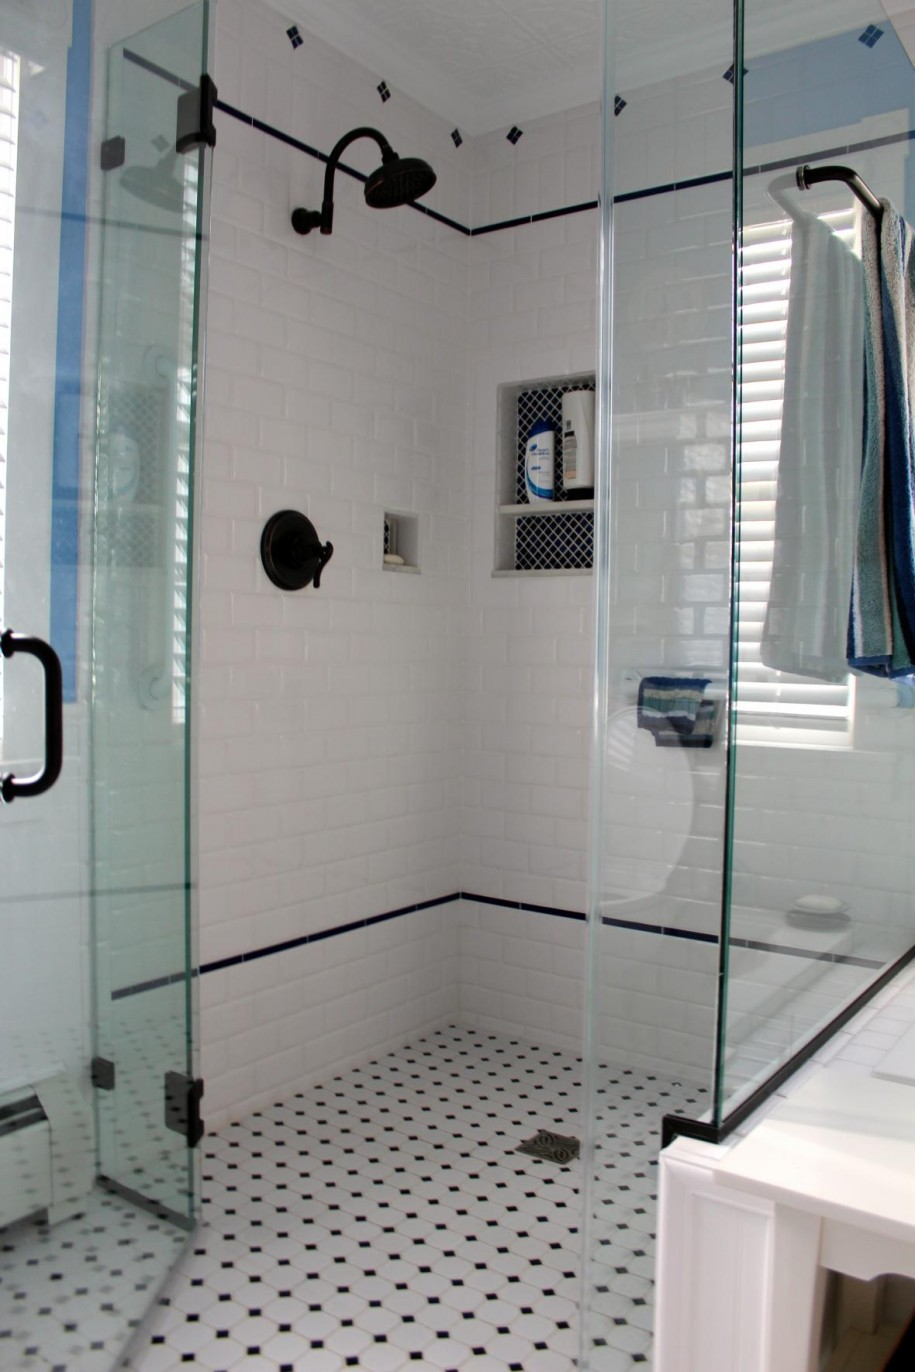 bathroom-modern-retro-bathroom-design-with-shower-room-designed-with-white-tile-wall-and-glass-door-also-head-shower-faucet-complete-with-small-wall-shelf-and-awesome-flooring-design-bathroom-shower